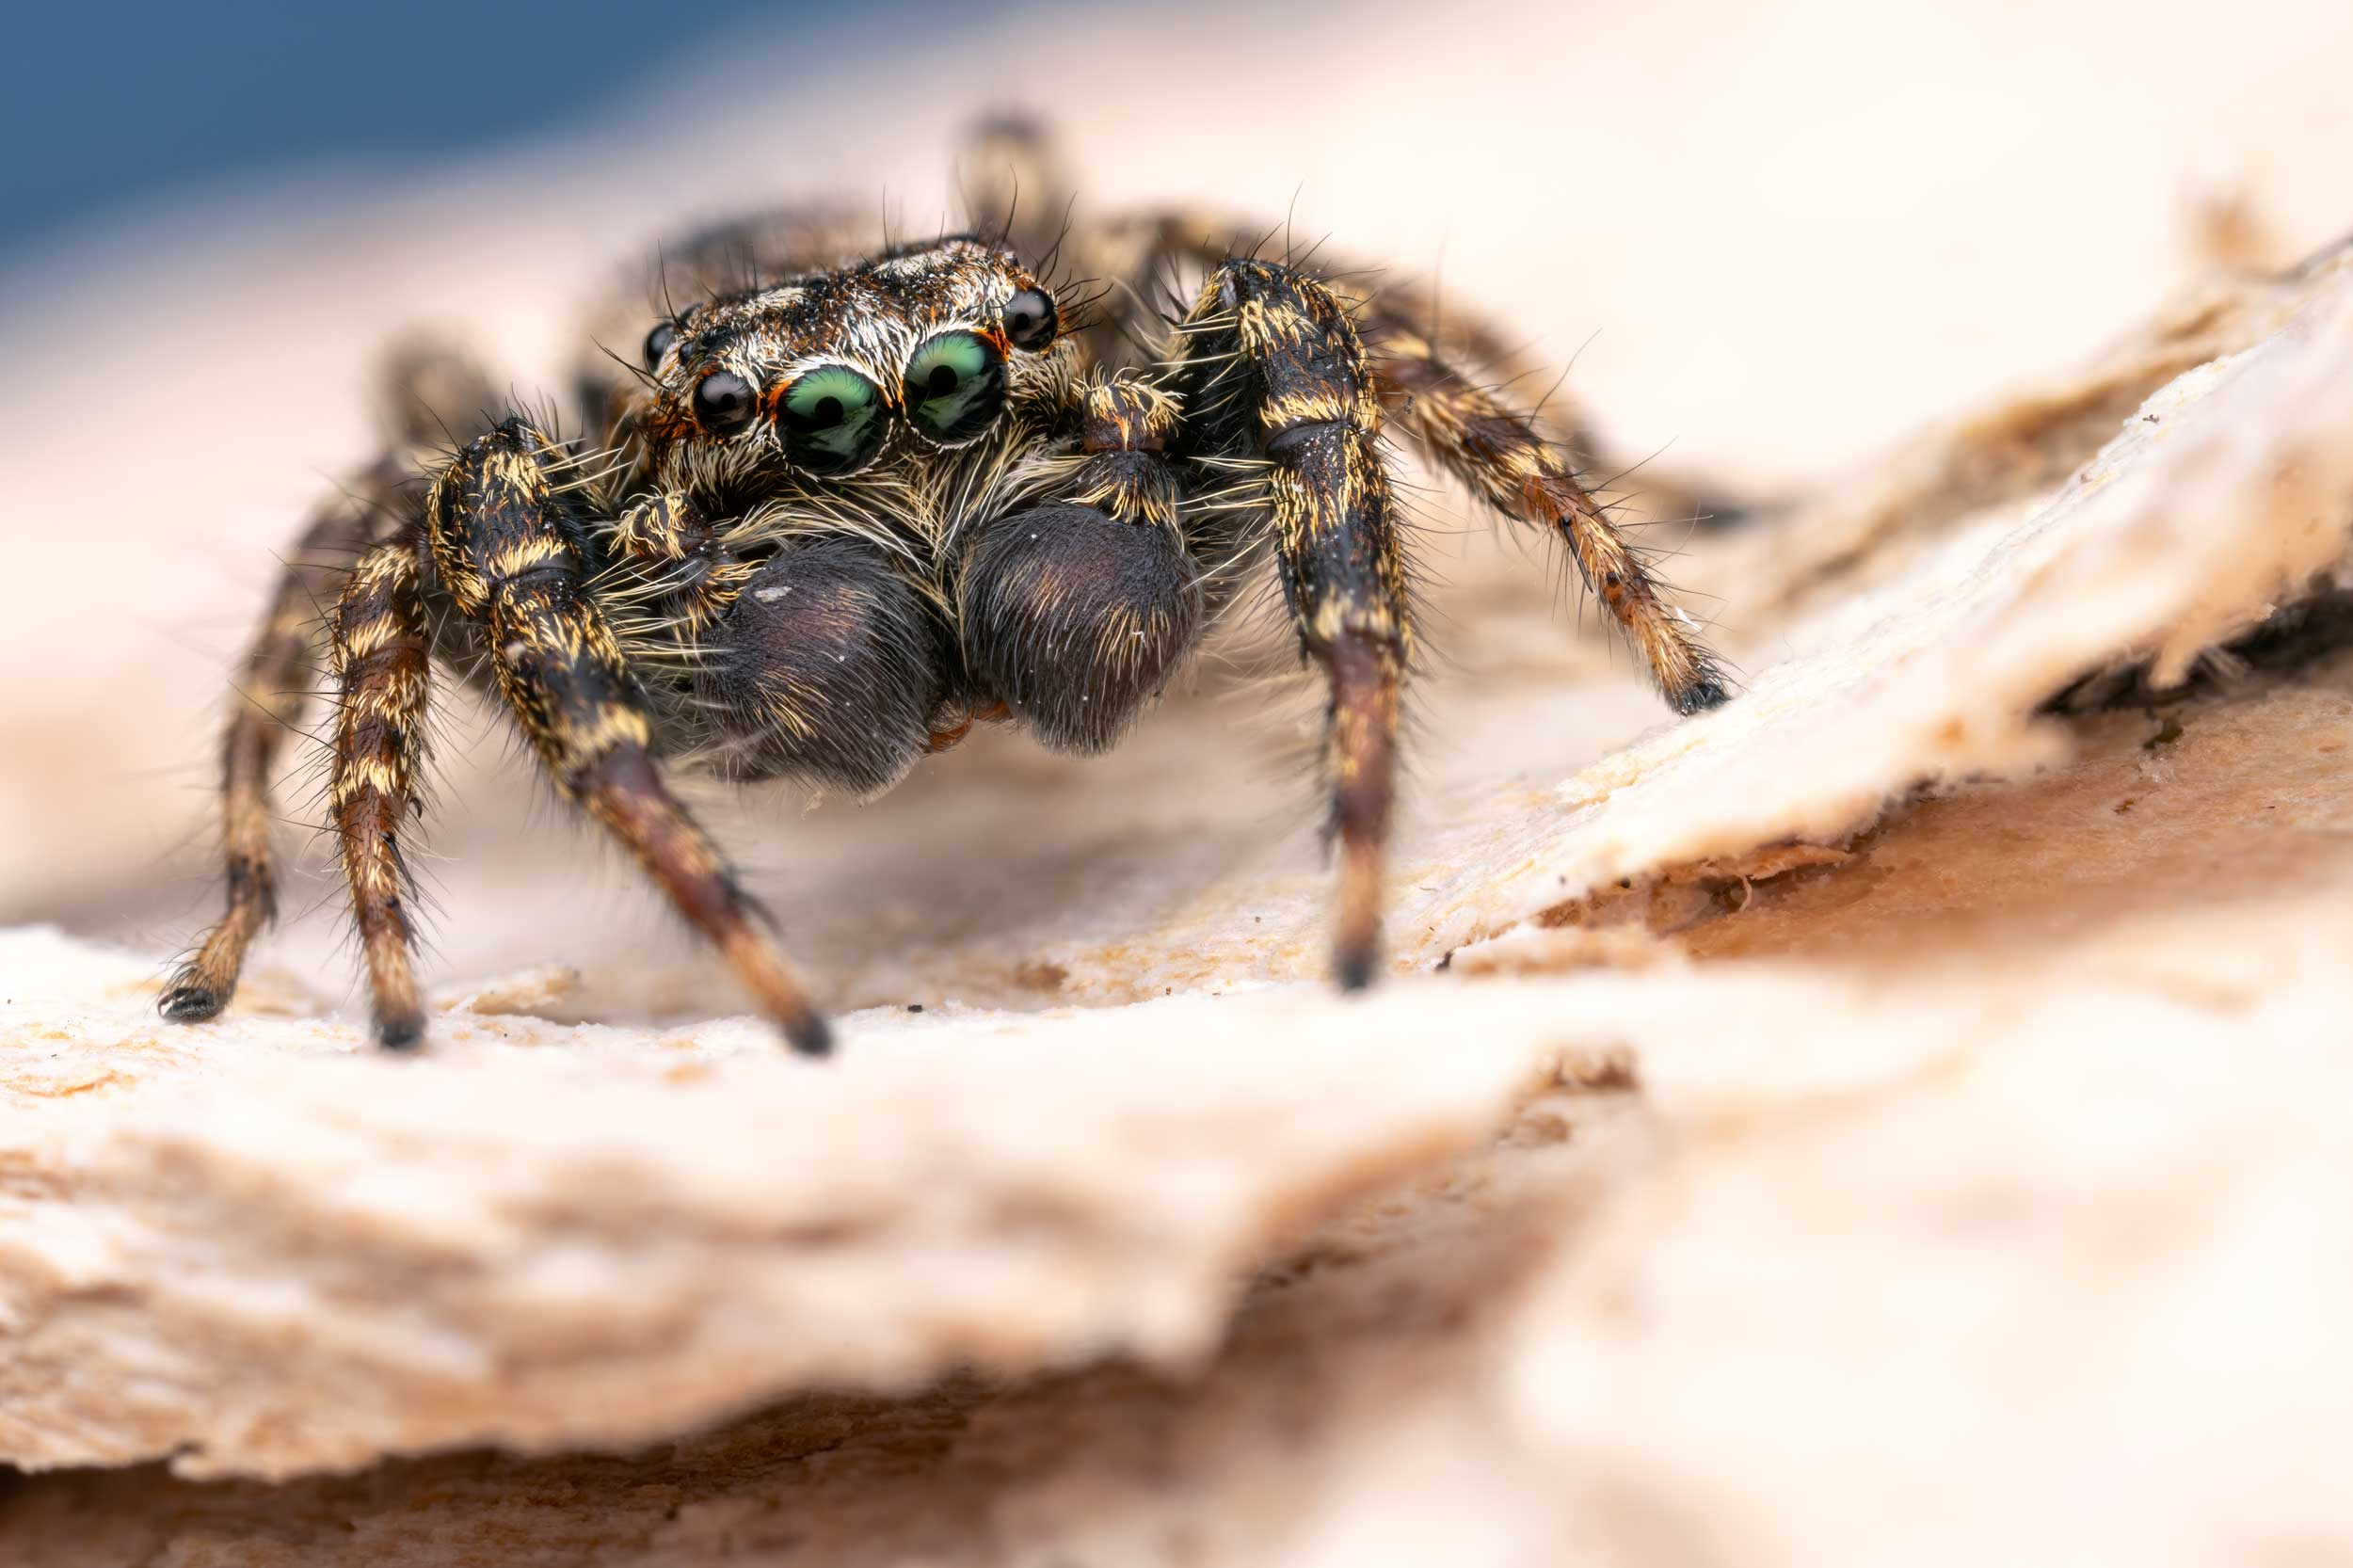 Jumping spider photographed in Lucerne, Switzerland